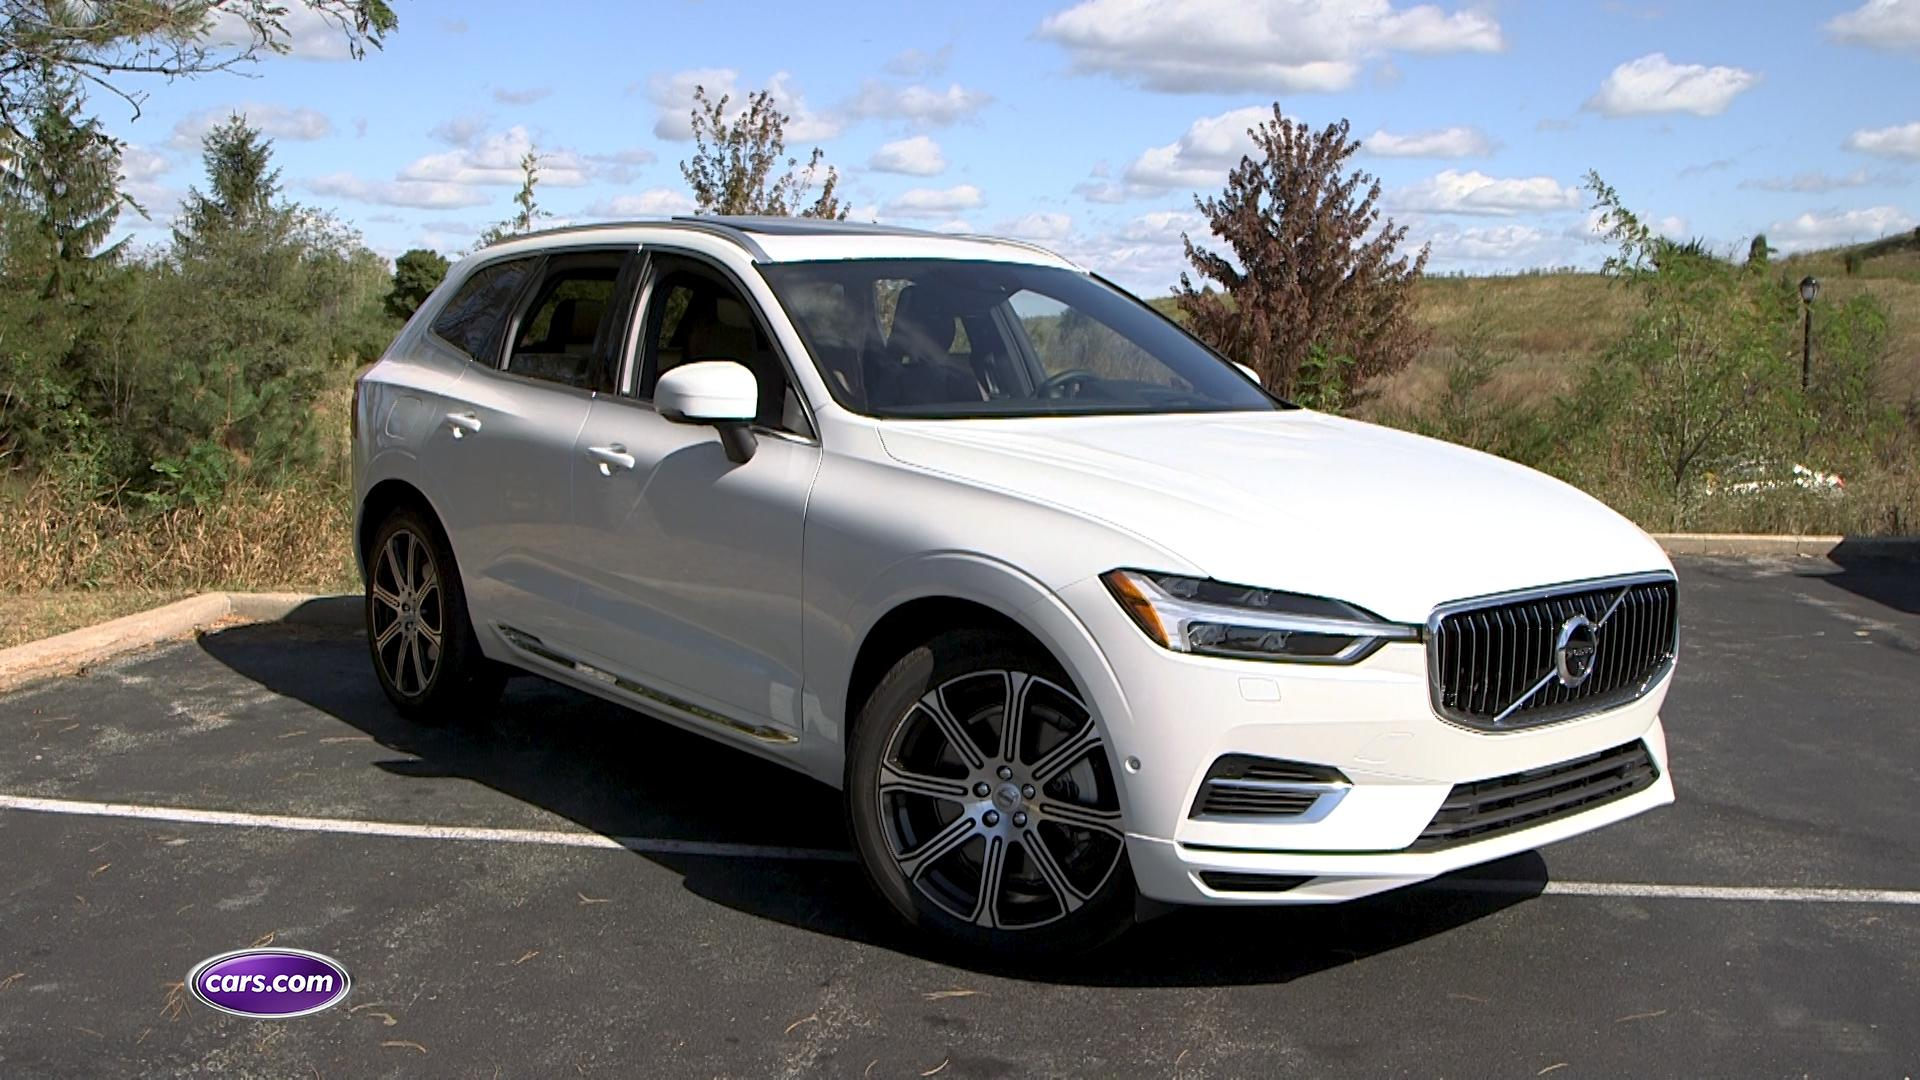 Video: 2018 Volvo XC60 Review — Cars.com